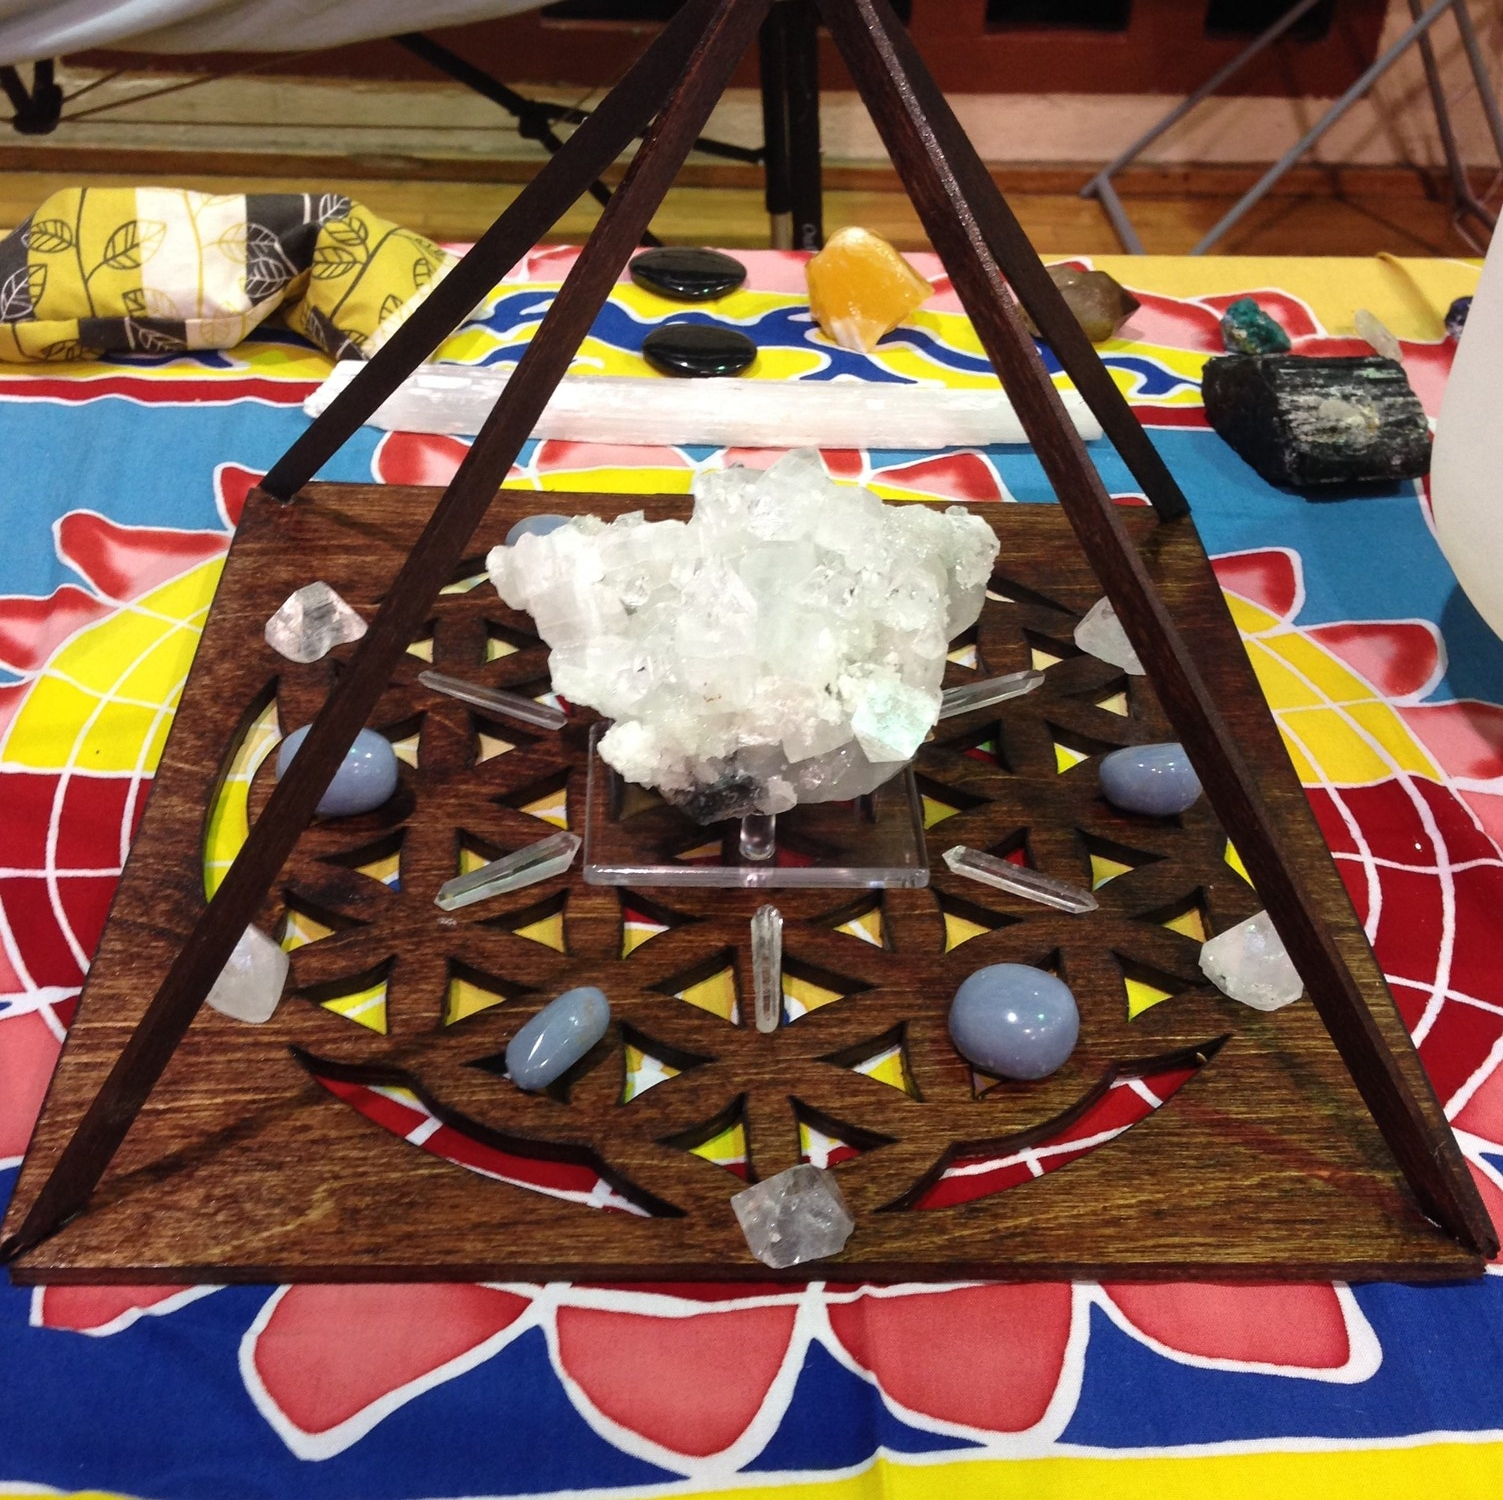 High vibration grid for upper chakra work at the Spirit of Oneness Expo. Includes apophyllite, angelite and clear quartz.